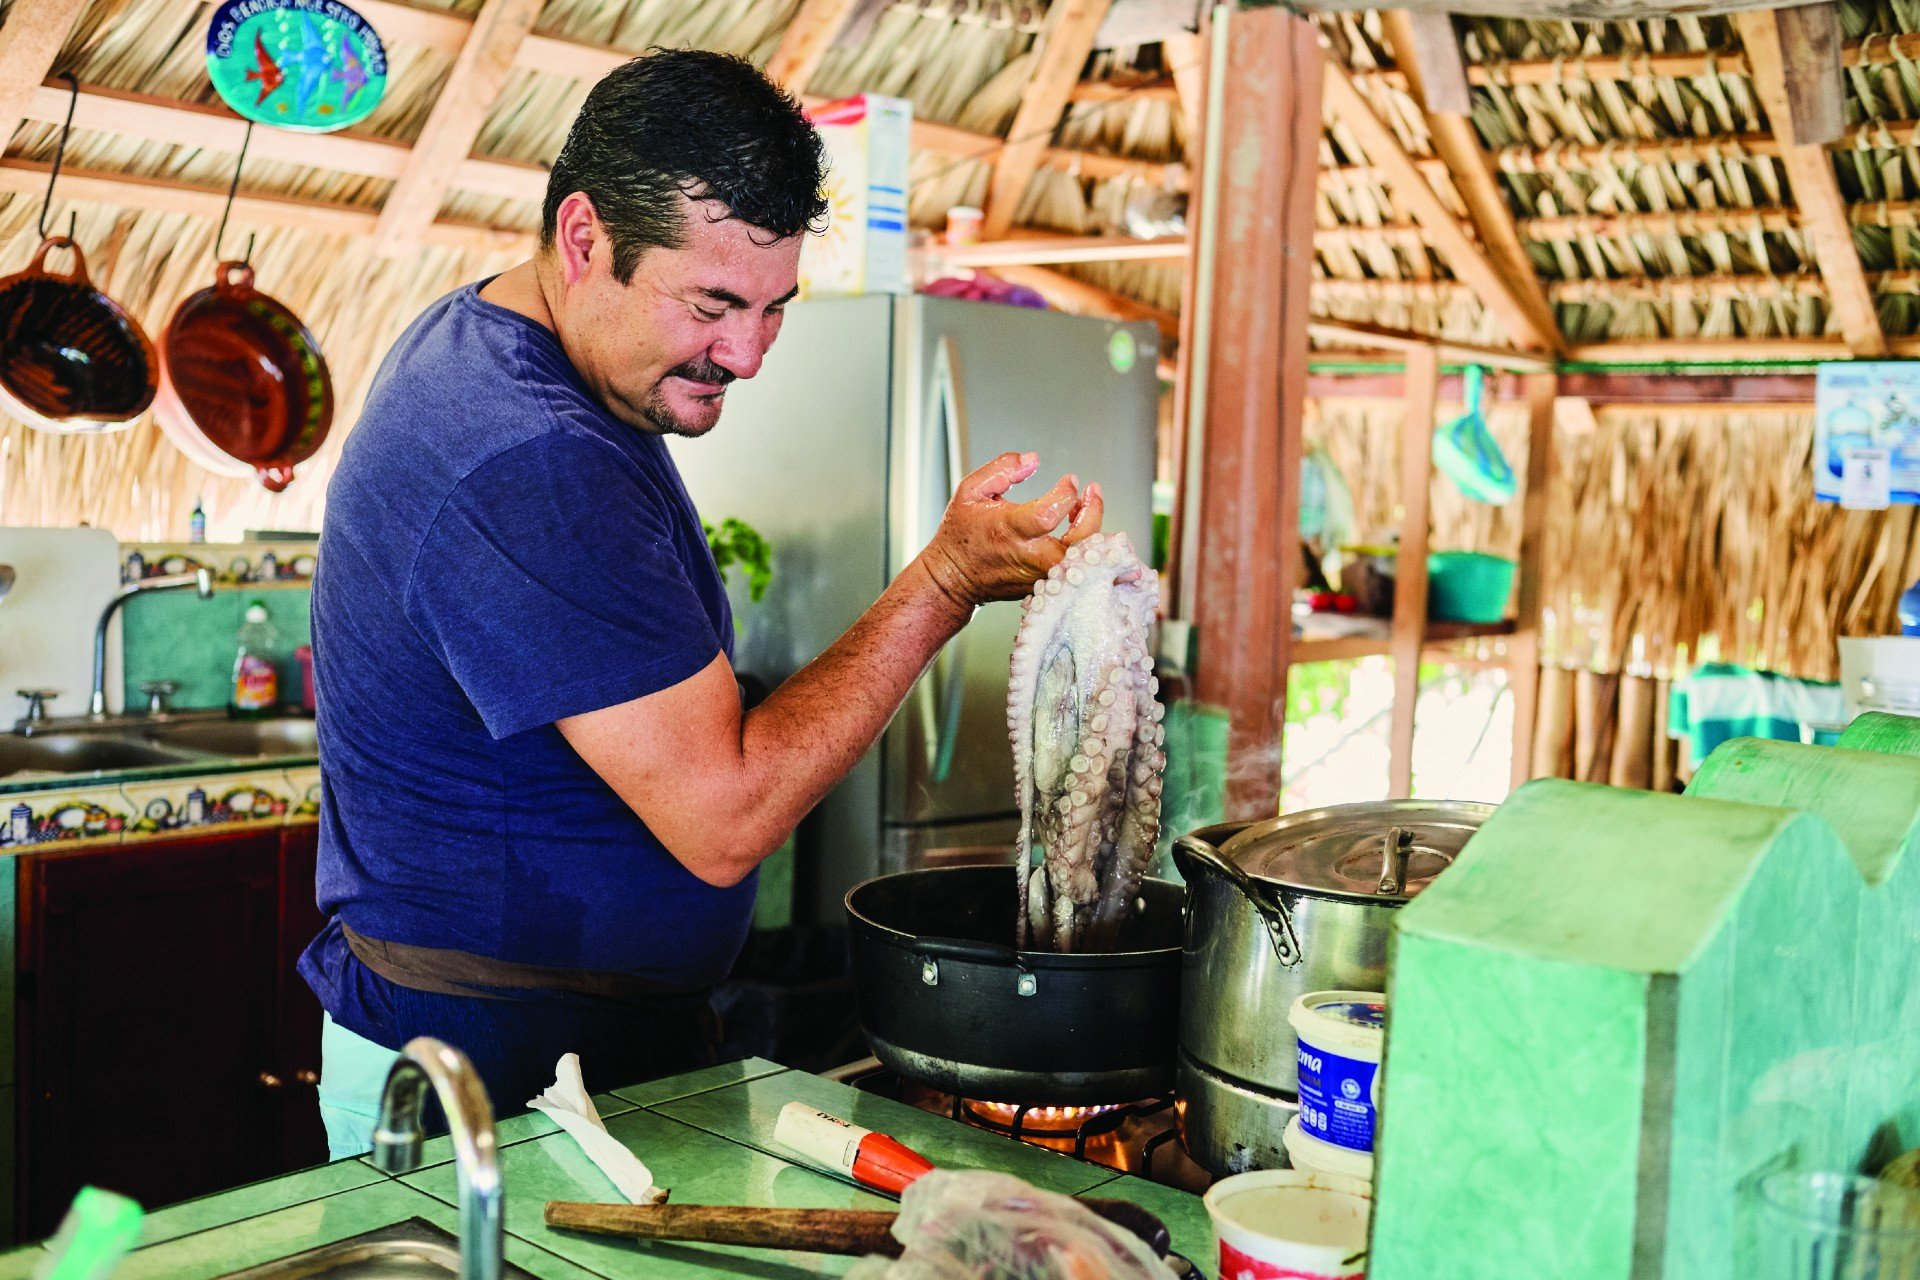 Alejandro Ruiz The Food of Oaxaca